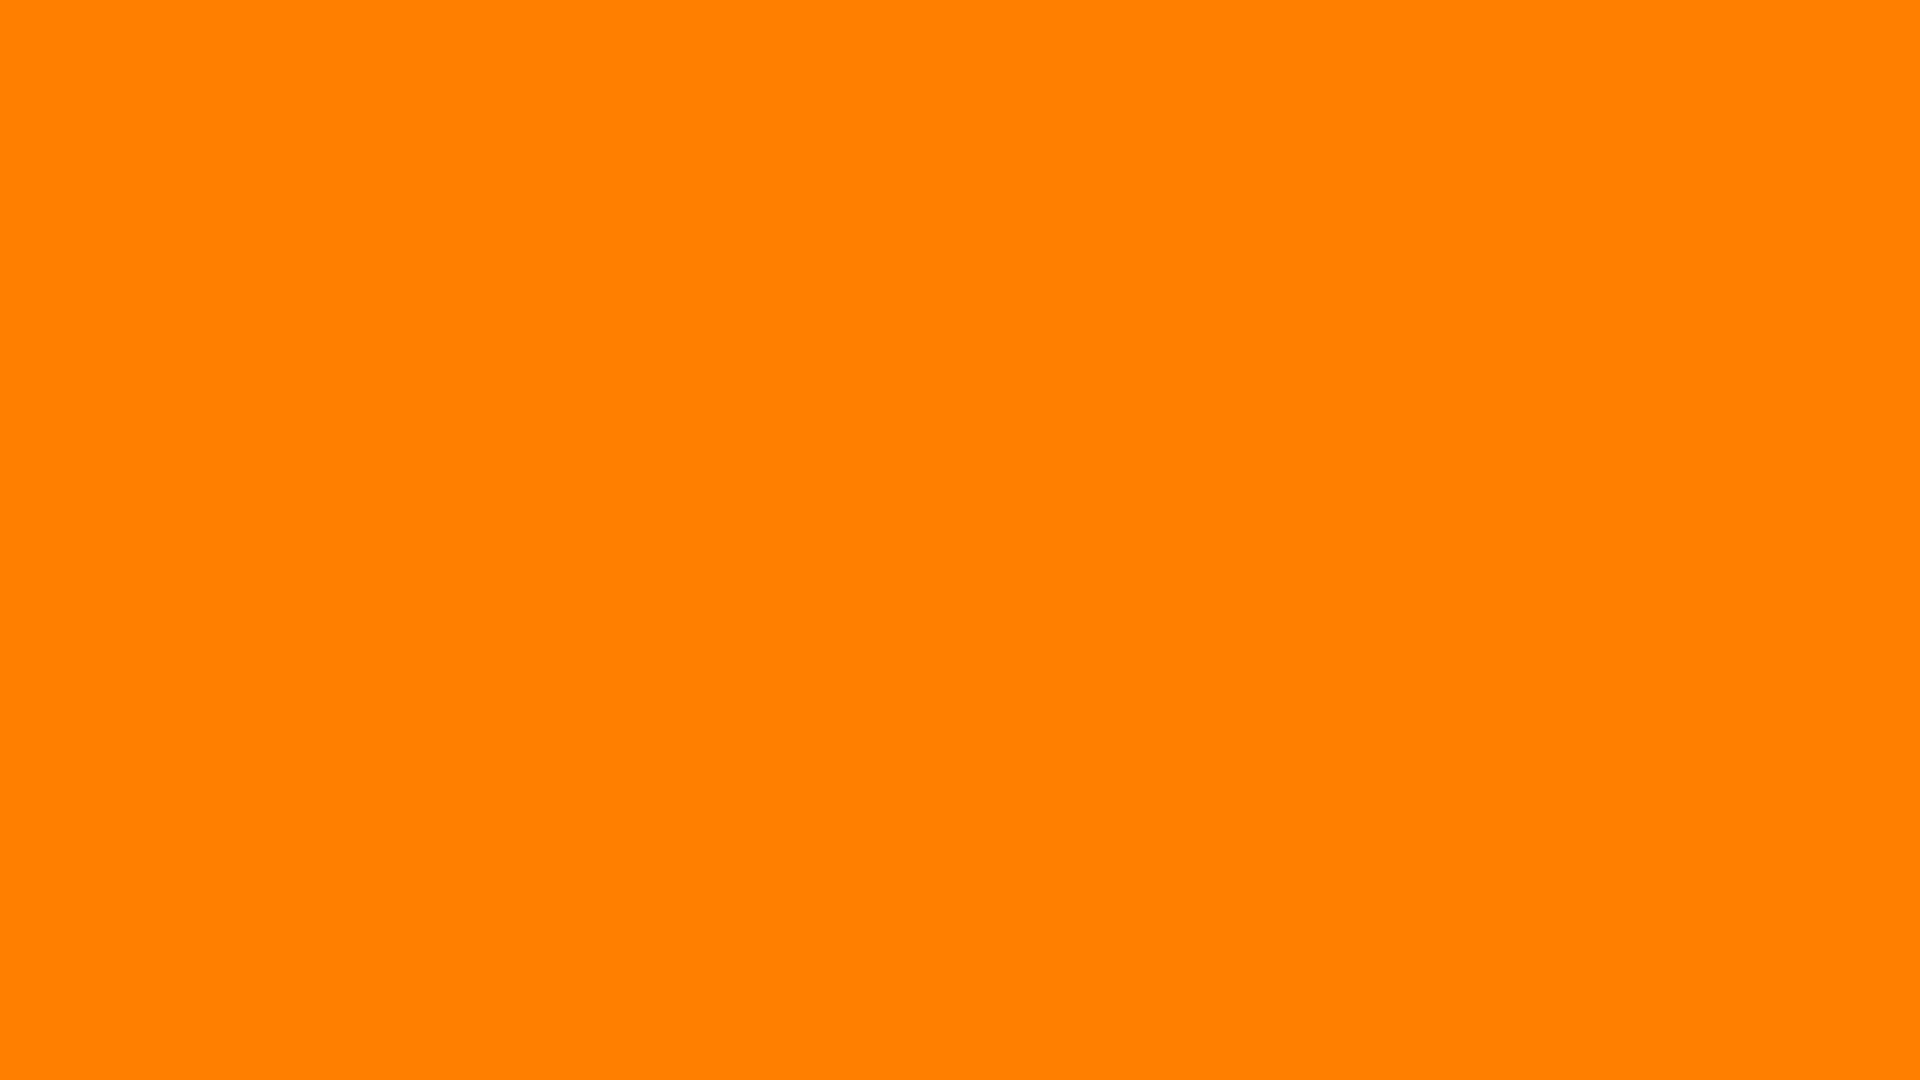 Orange Wallpaper Color